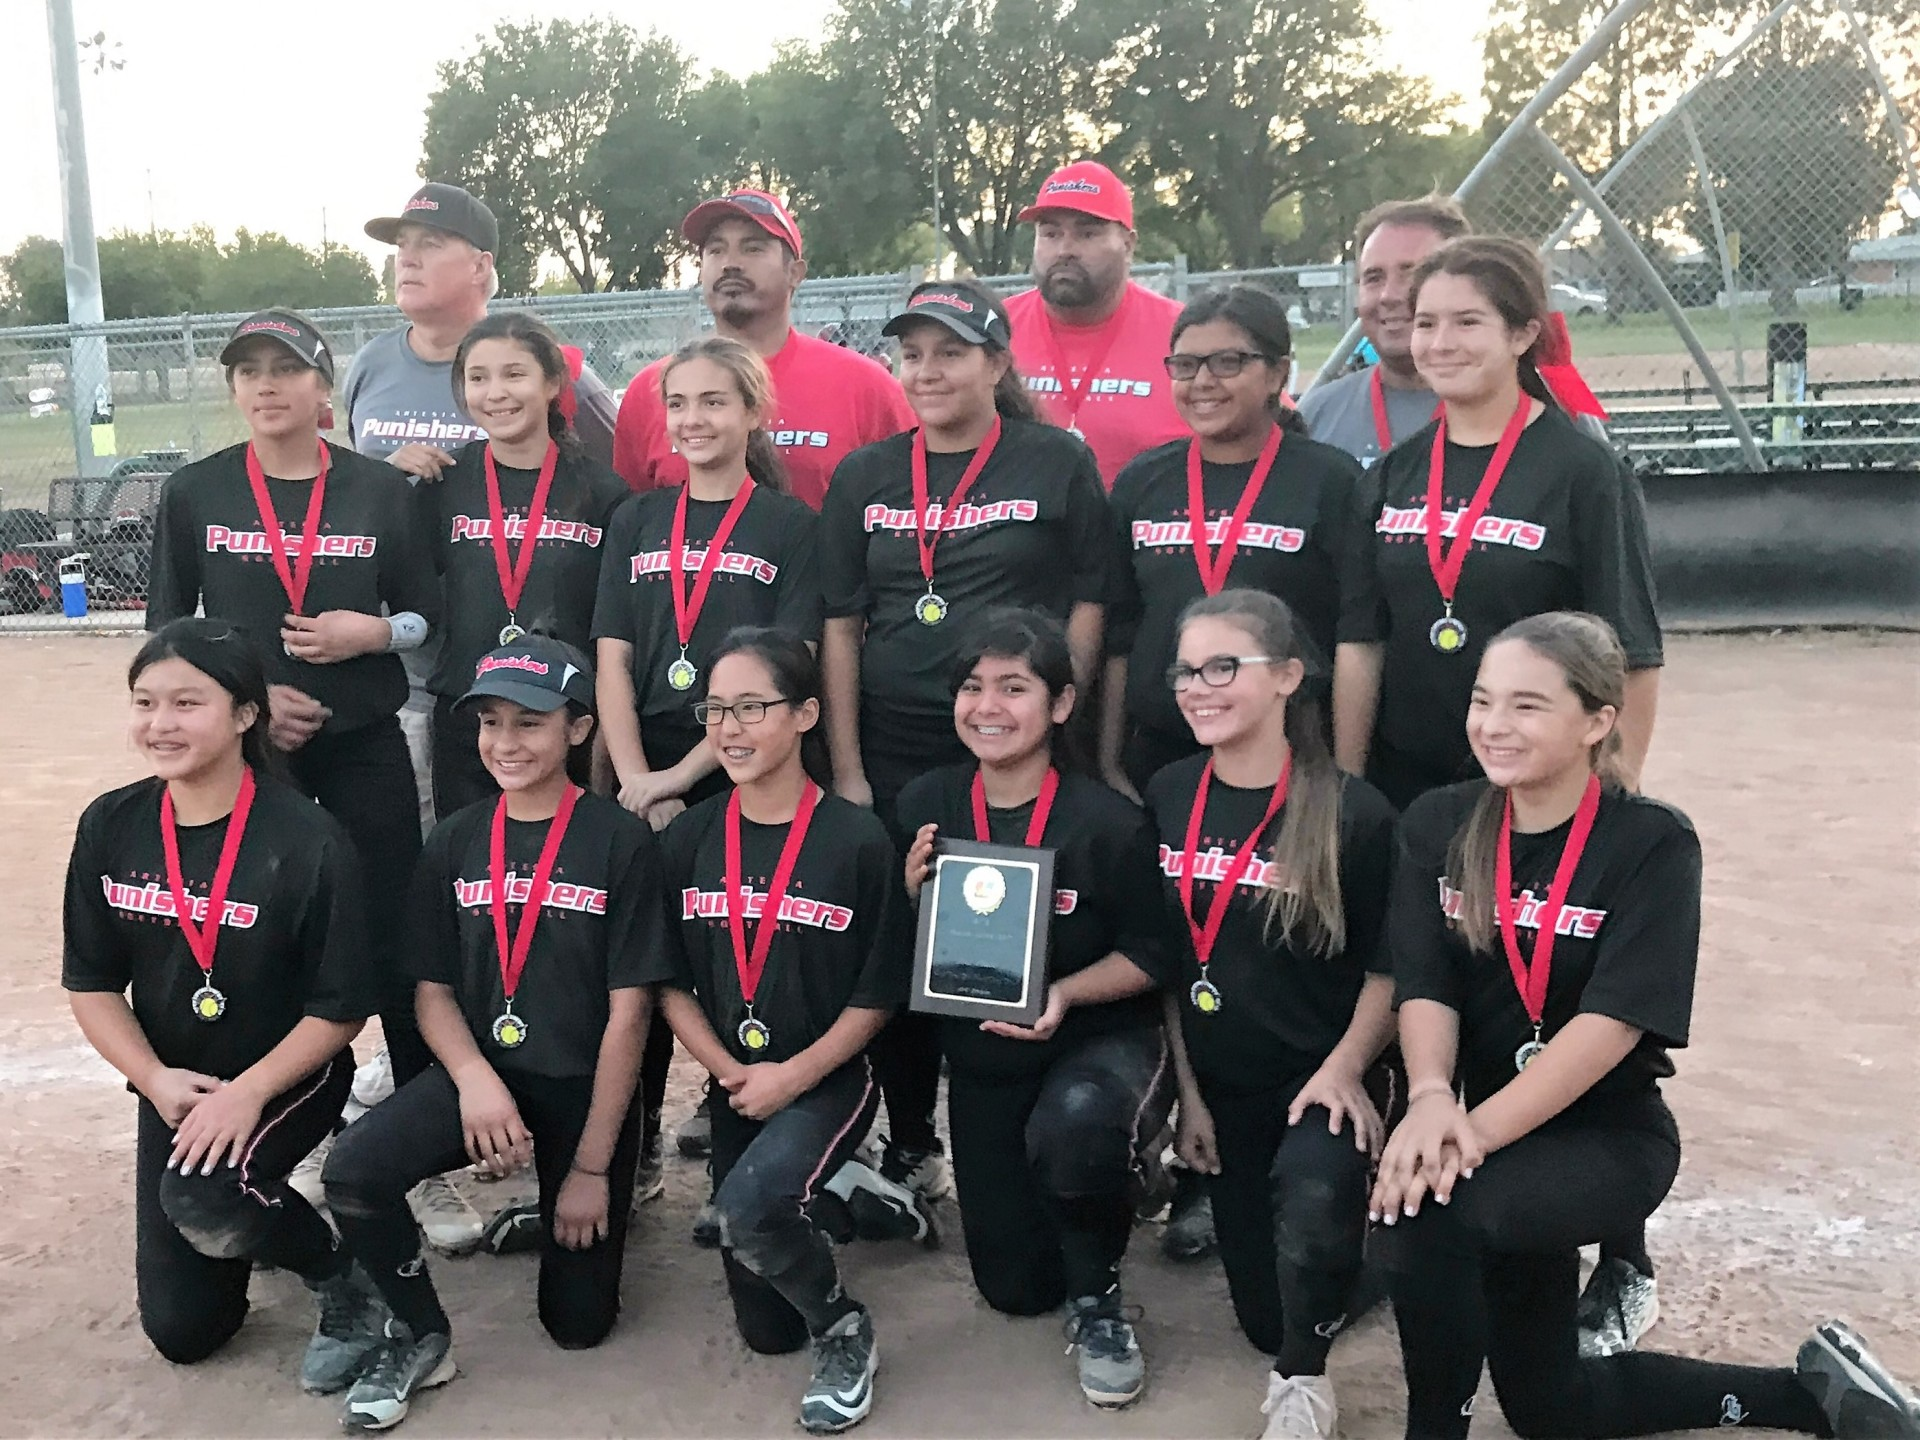 Runner Up - Artesia Punishers